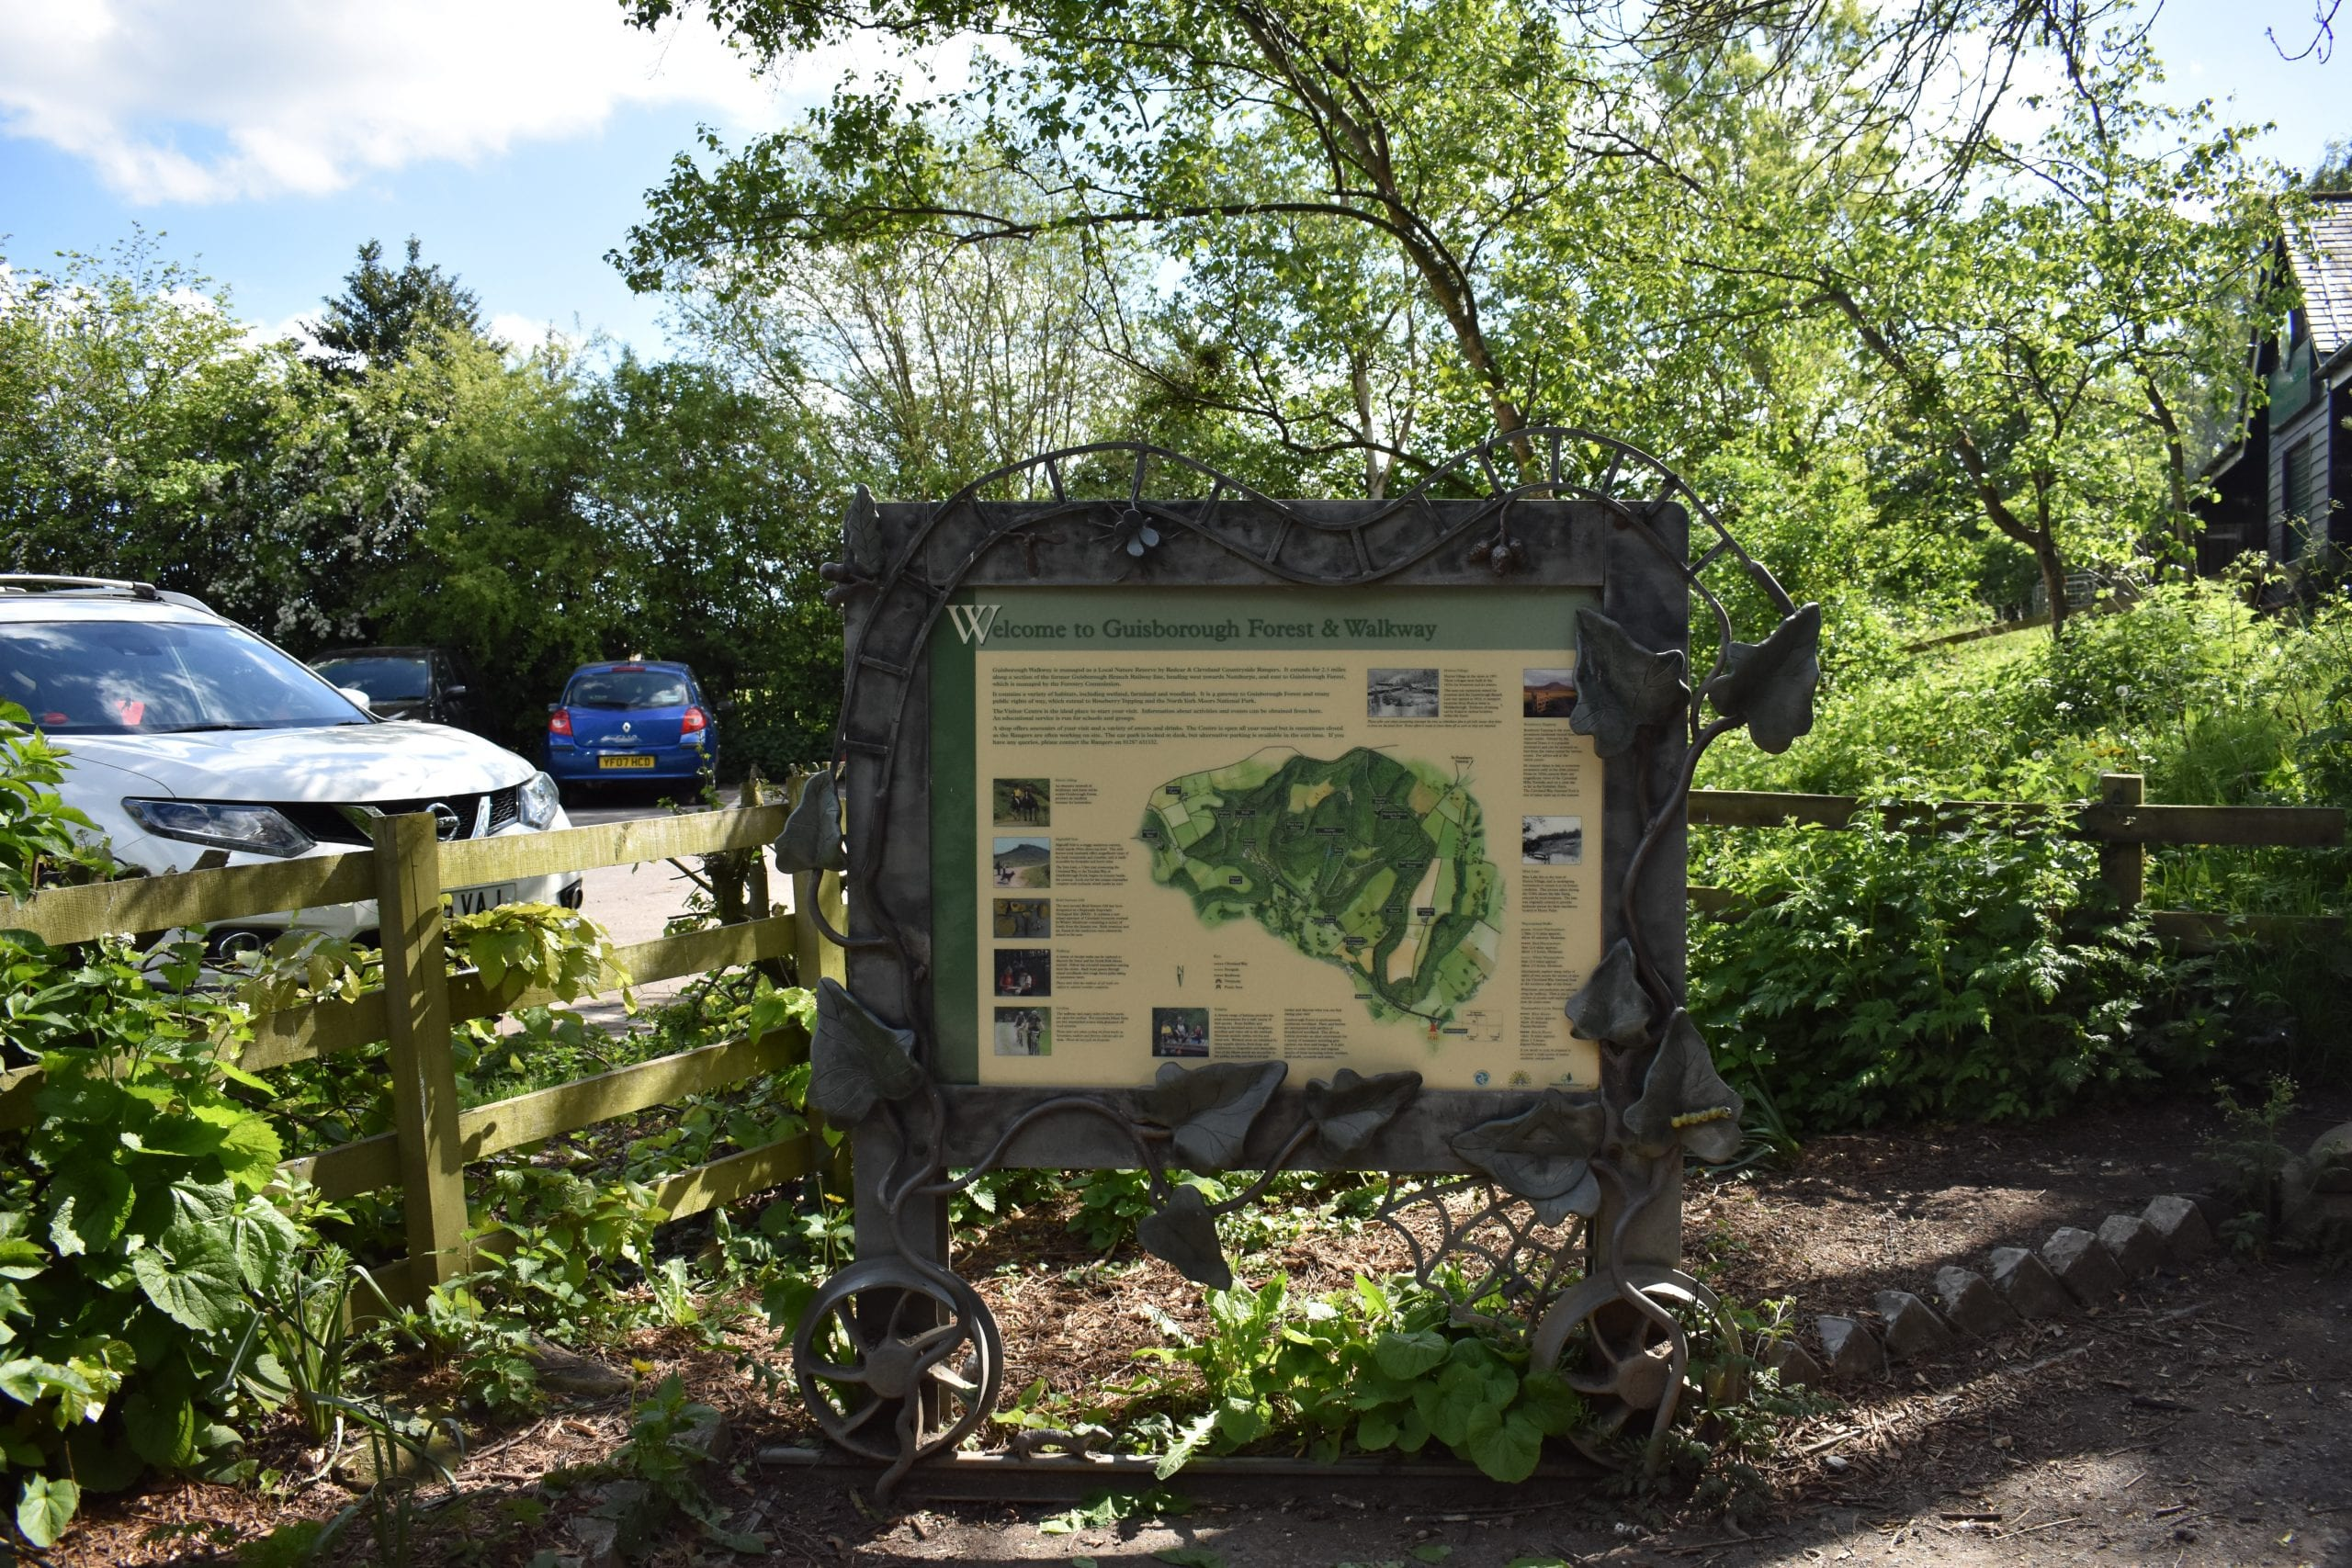 Photo of Guisborough Forest and Walkway Forest Map